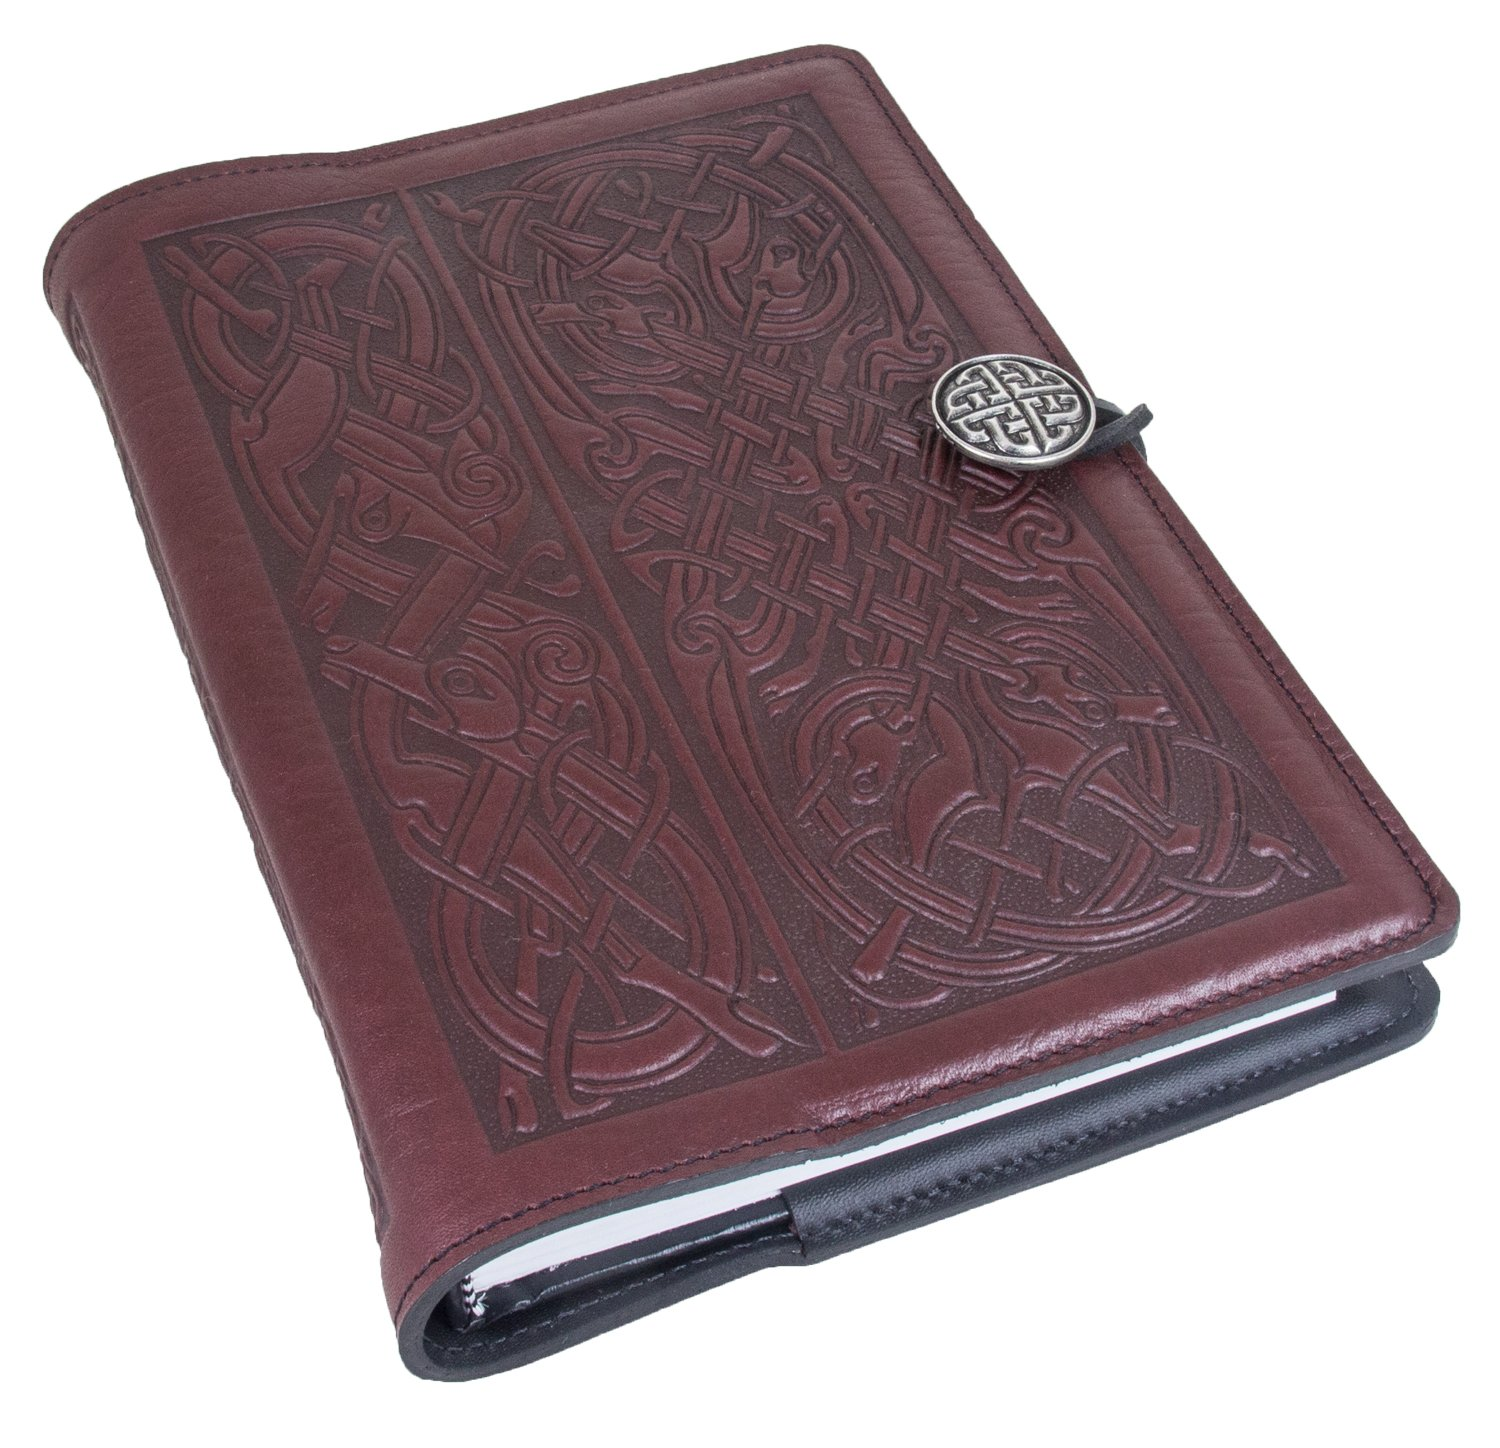 Genuine Leather Refillable Journal Cover + Hardbound Blank Insert - 6x9 Inches - Celtic Hounds, Wine With Pewter Button - Made in the USA by Oberon Design